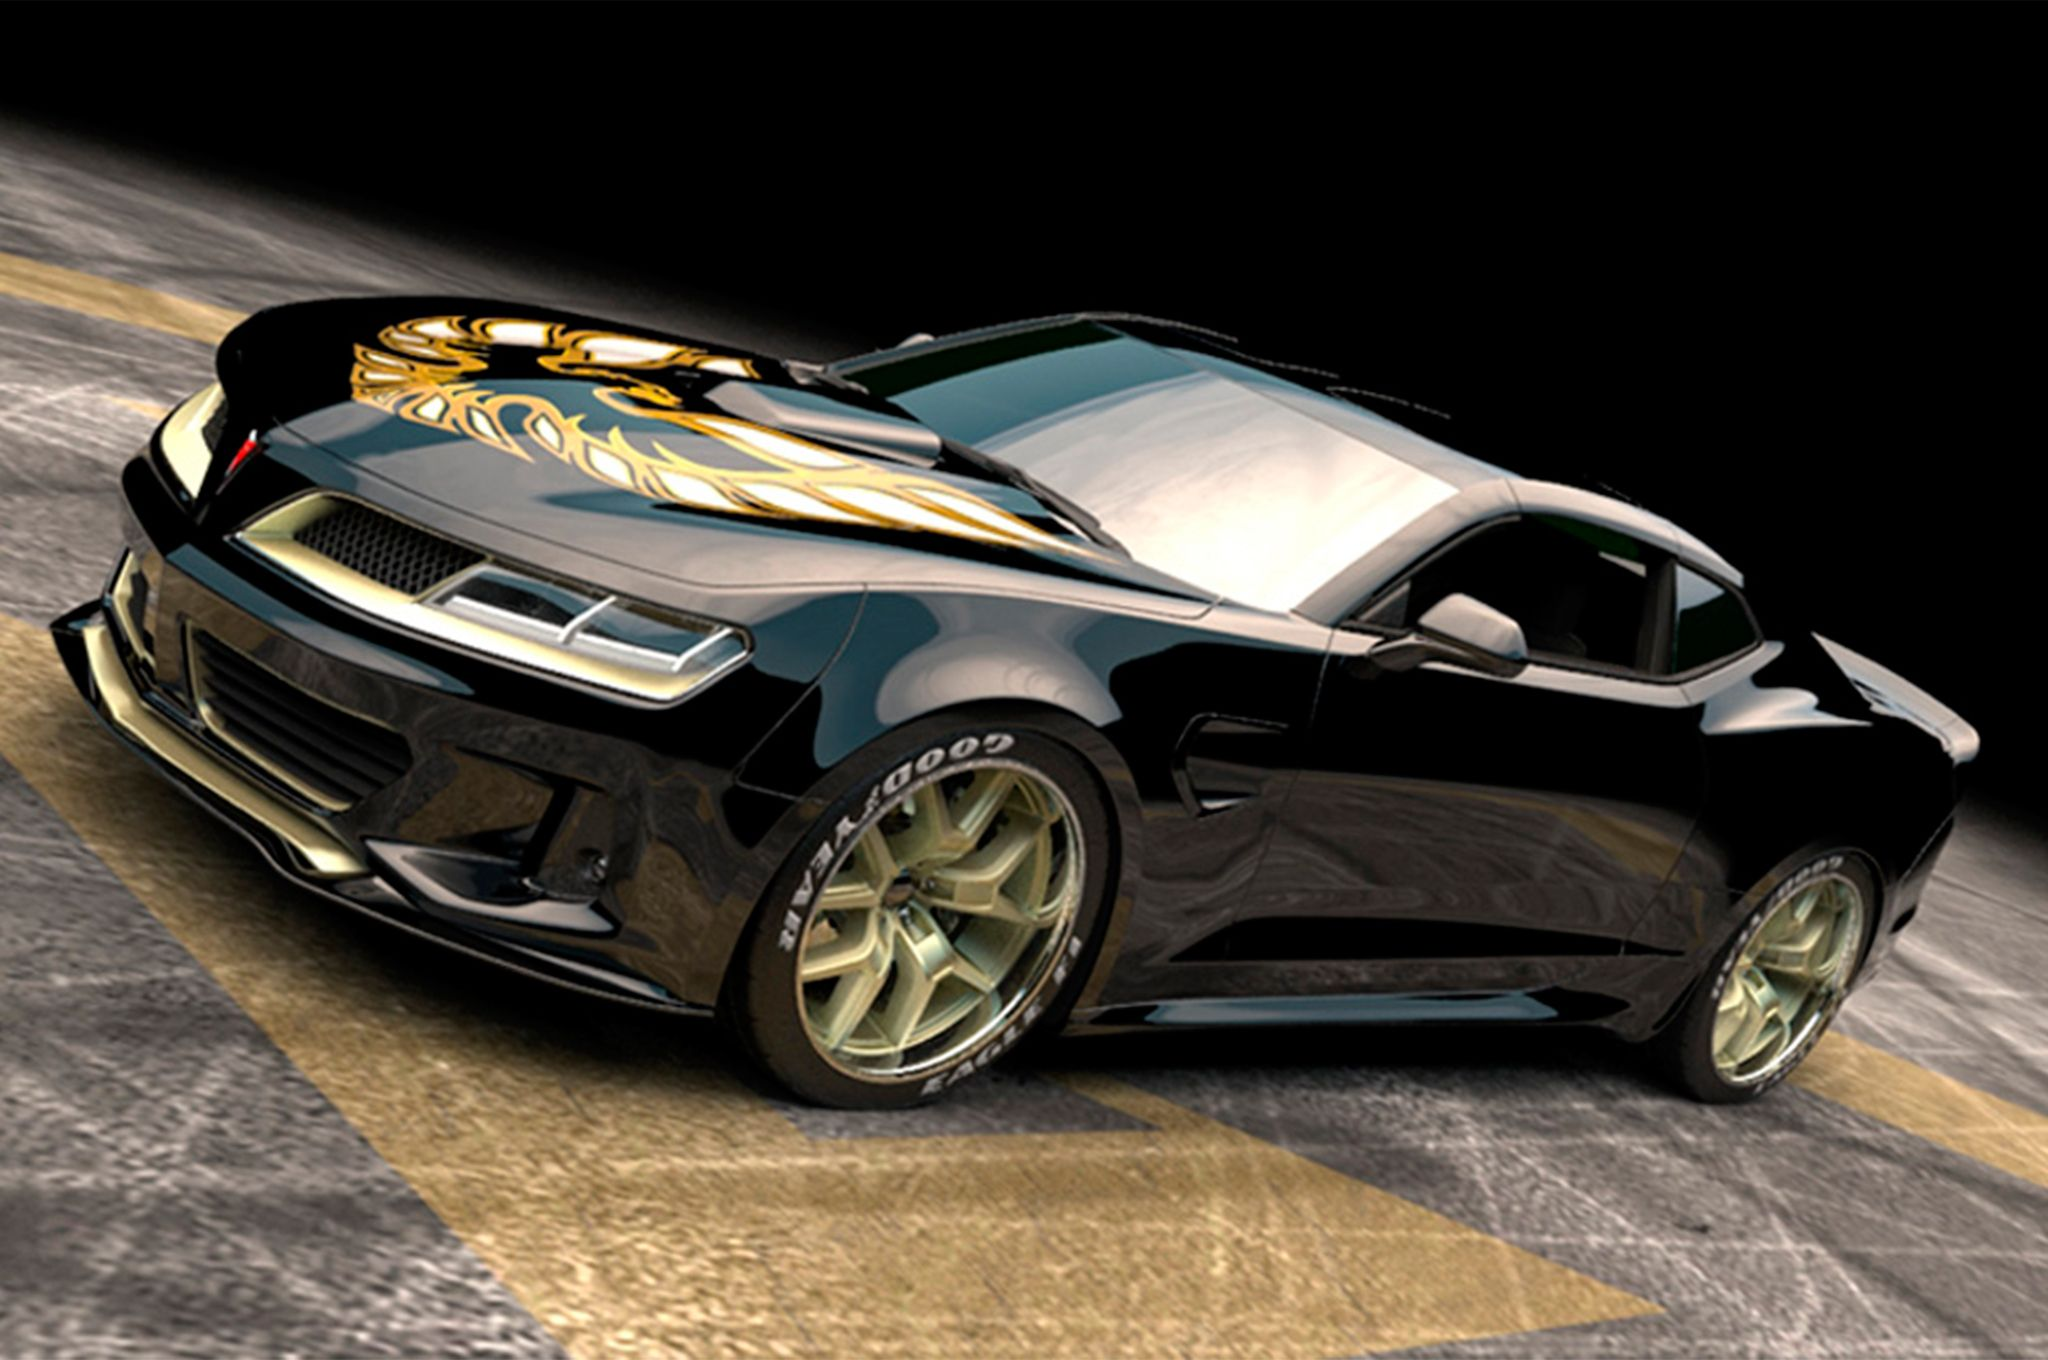 This Is the 1,000HP 2017 Trans Am 455 Super Duty